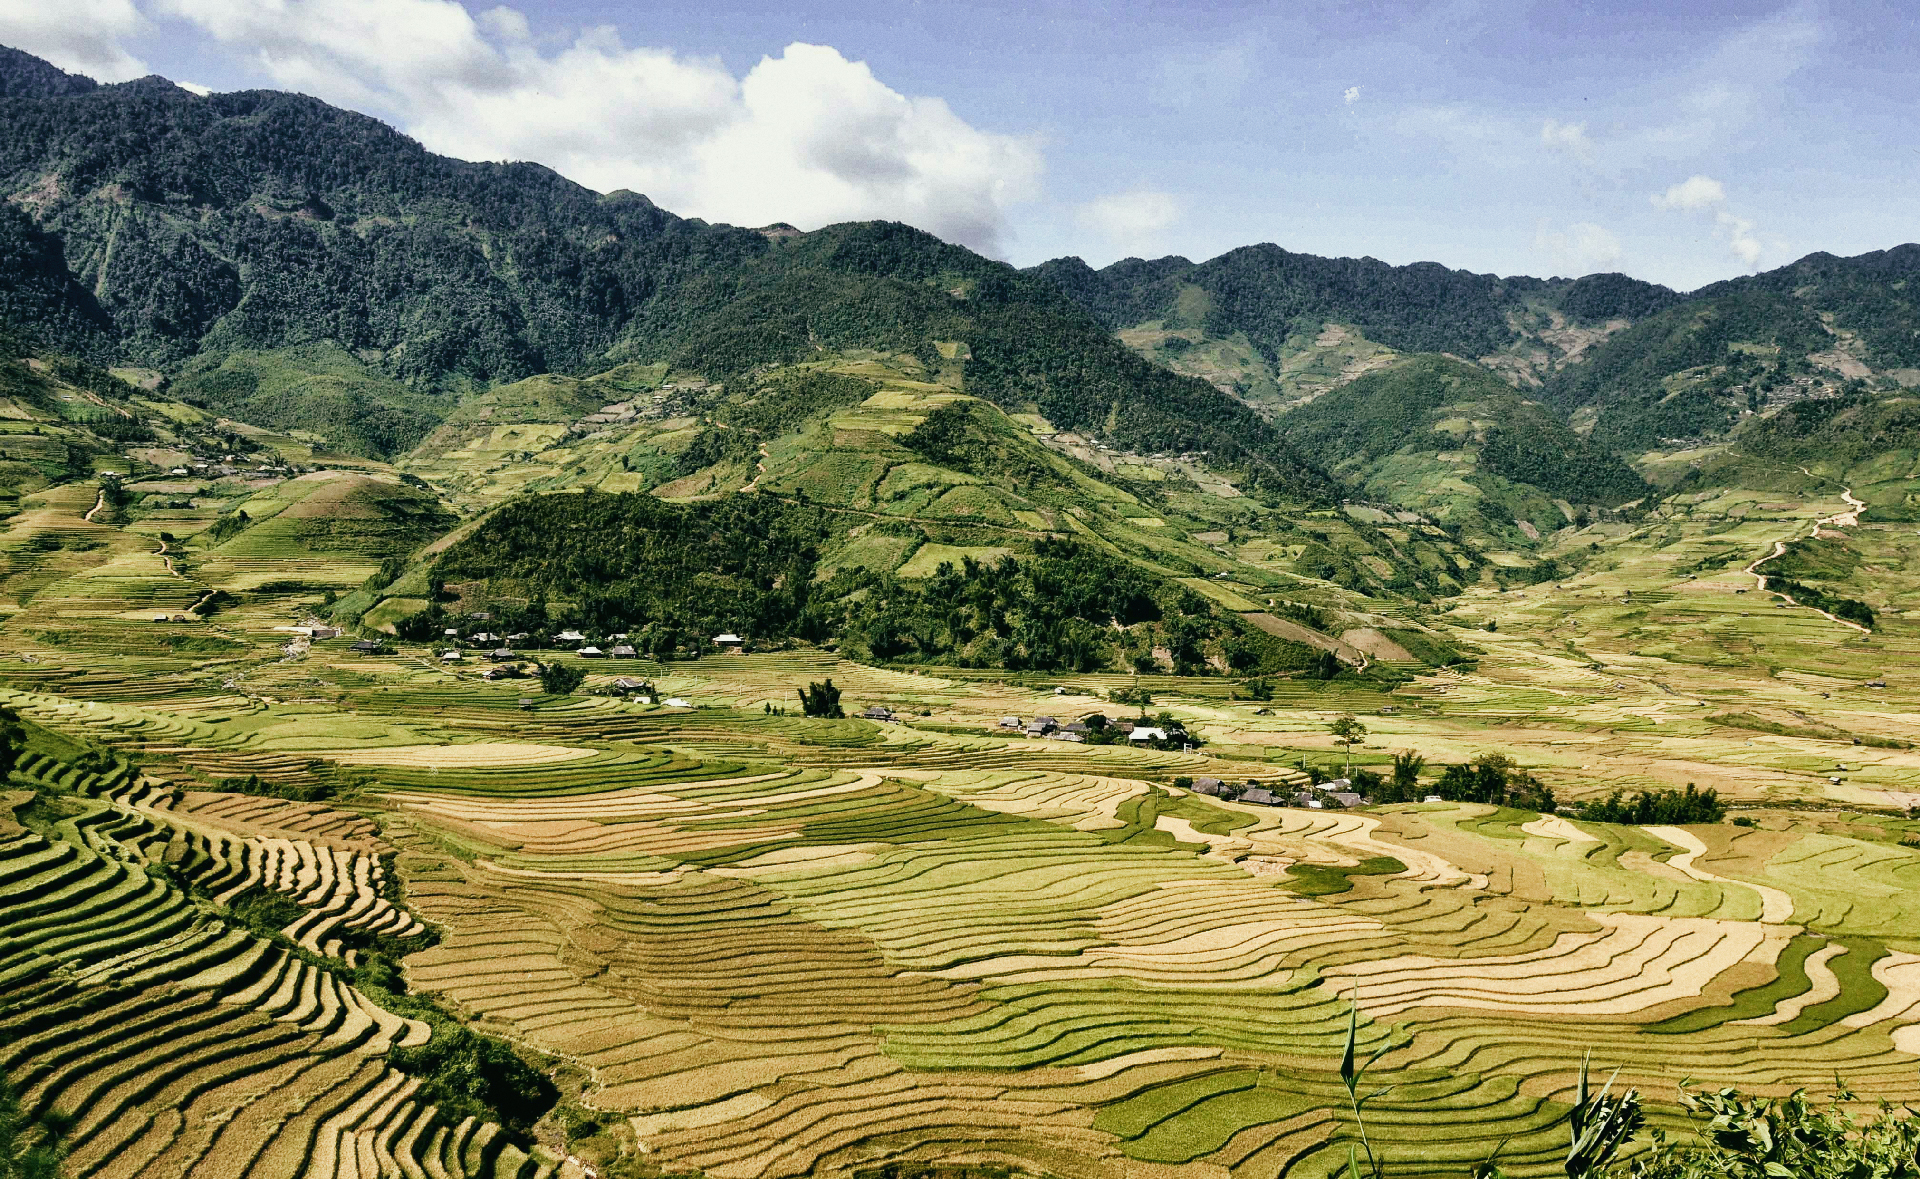 Sapa-Panorama-Outlanderly-Vietnam-Travel-Nomad